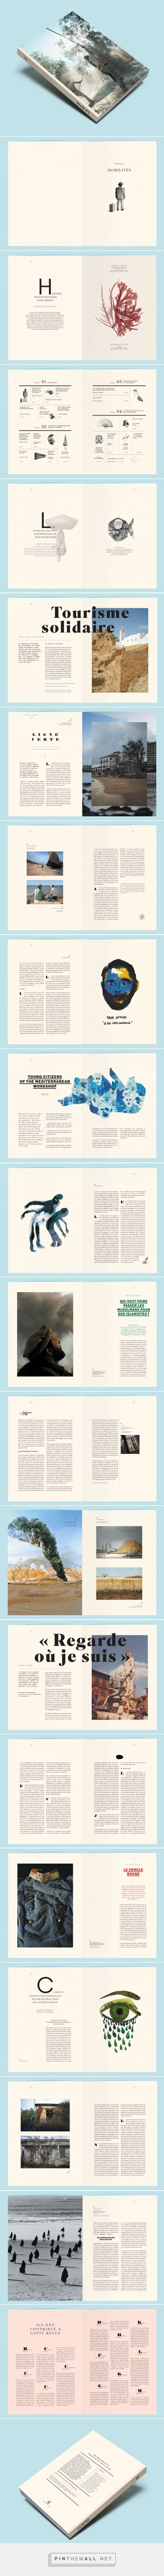 Editorial Design Inspiration: La Villa Mediterranée by Violaine & Jeremy  cover full inner cover isolated key figure (scene emptied)